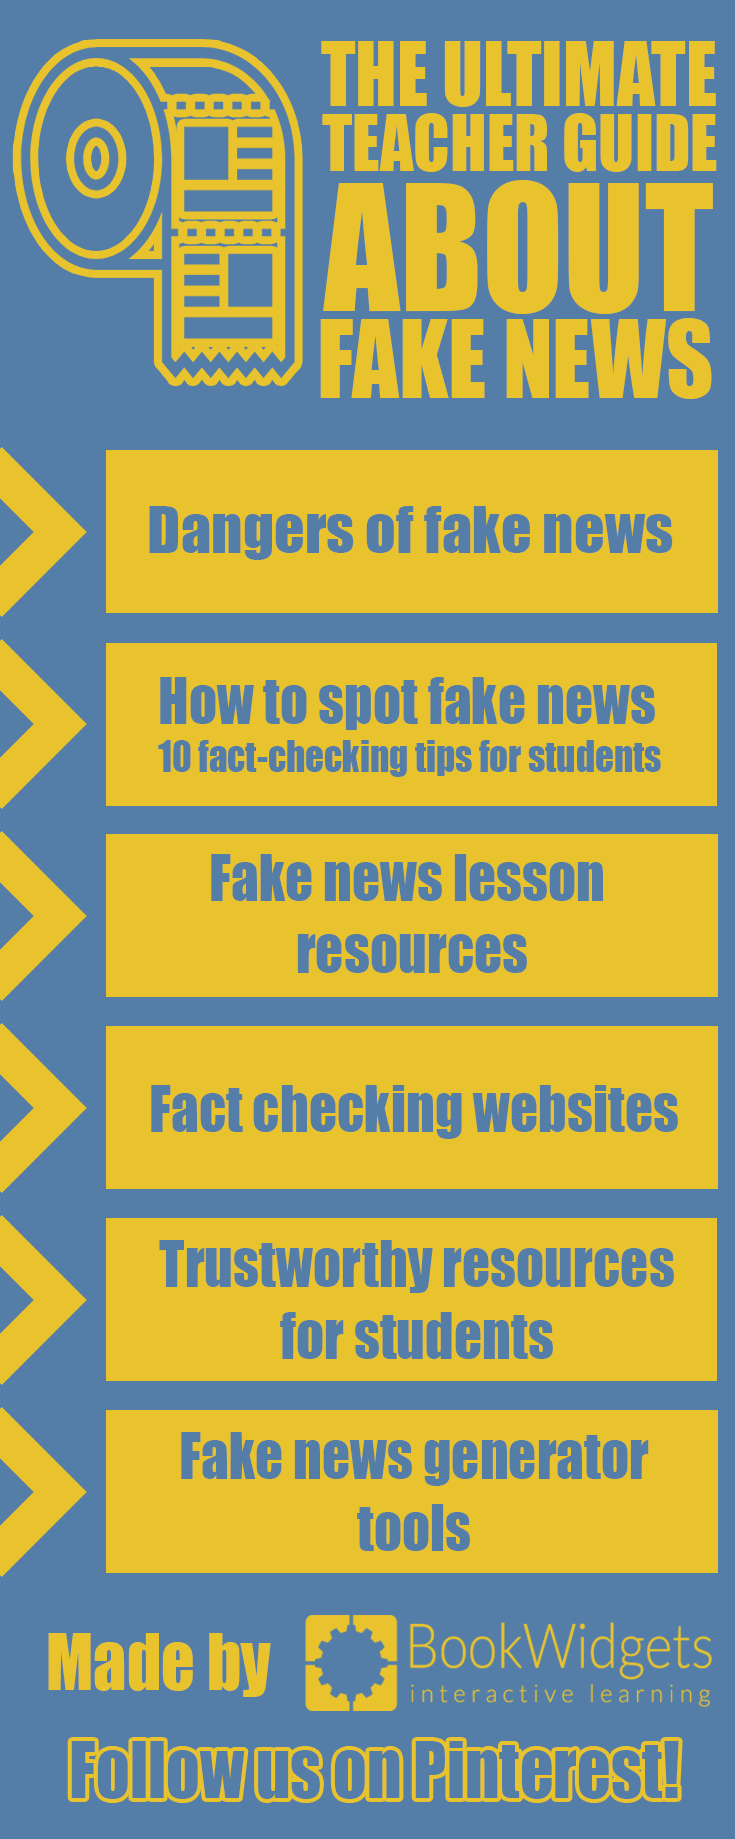 The ultimate teacher guide about Fake news